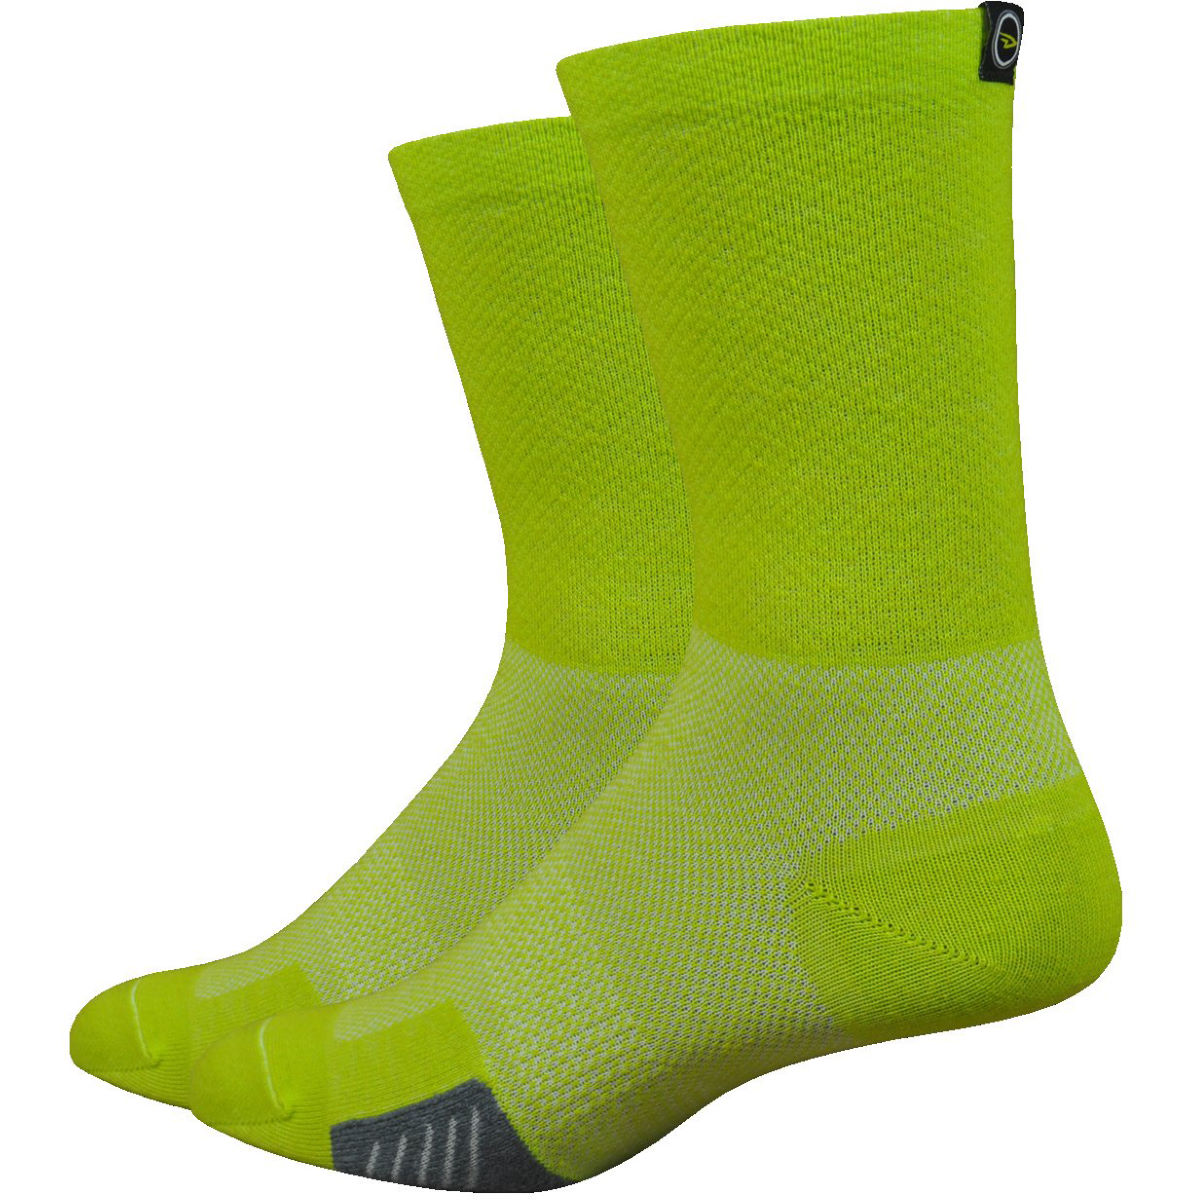 DeFeet DeFeet Cyclismo Wool Comp Limelight Socks   Socks